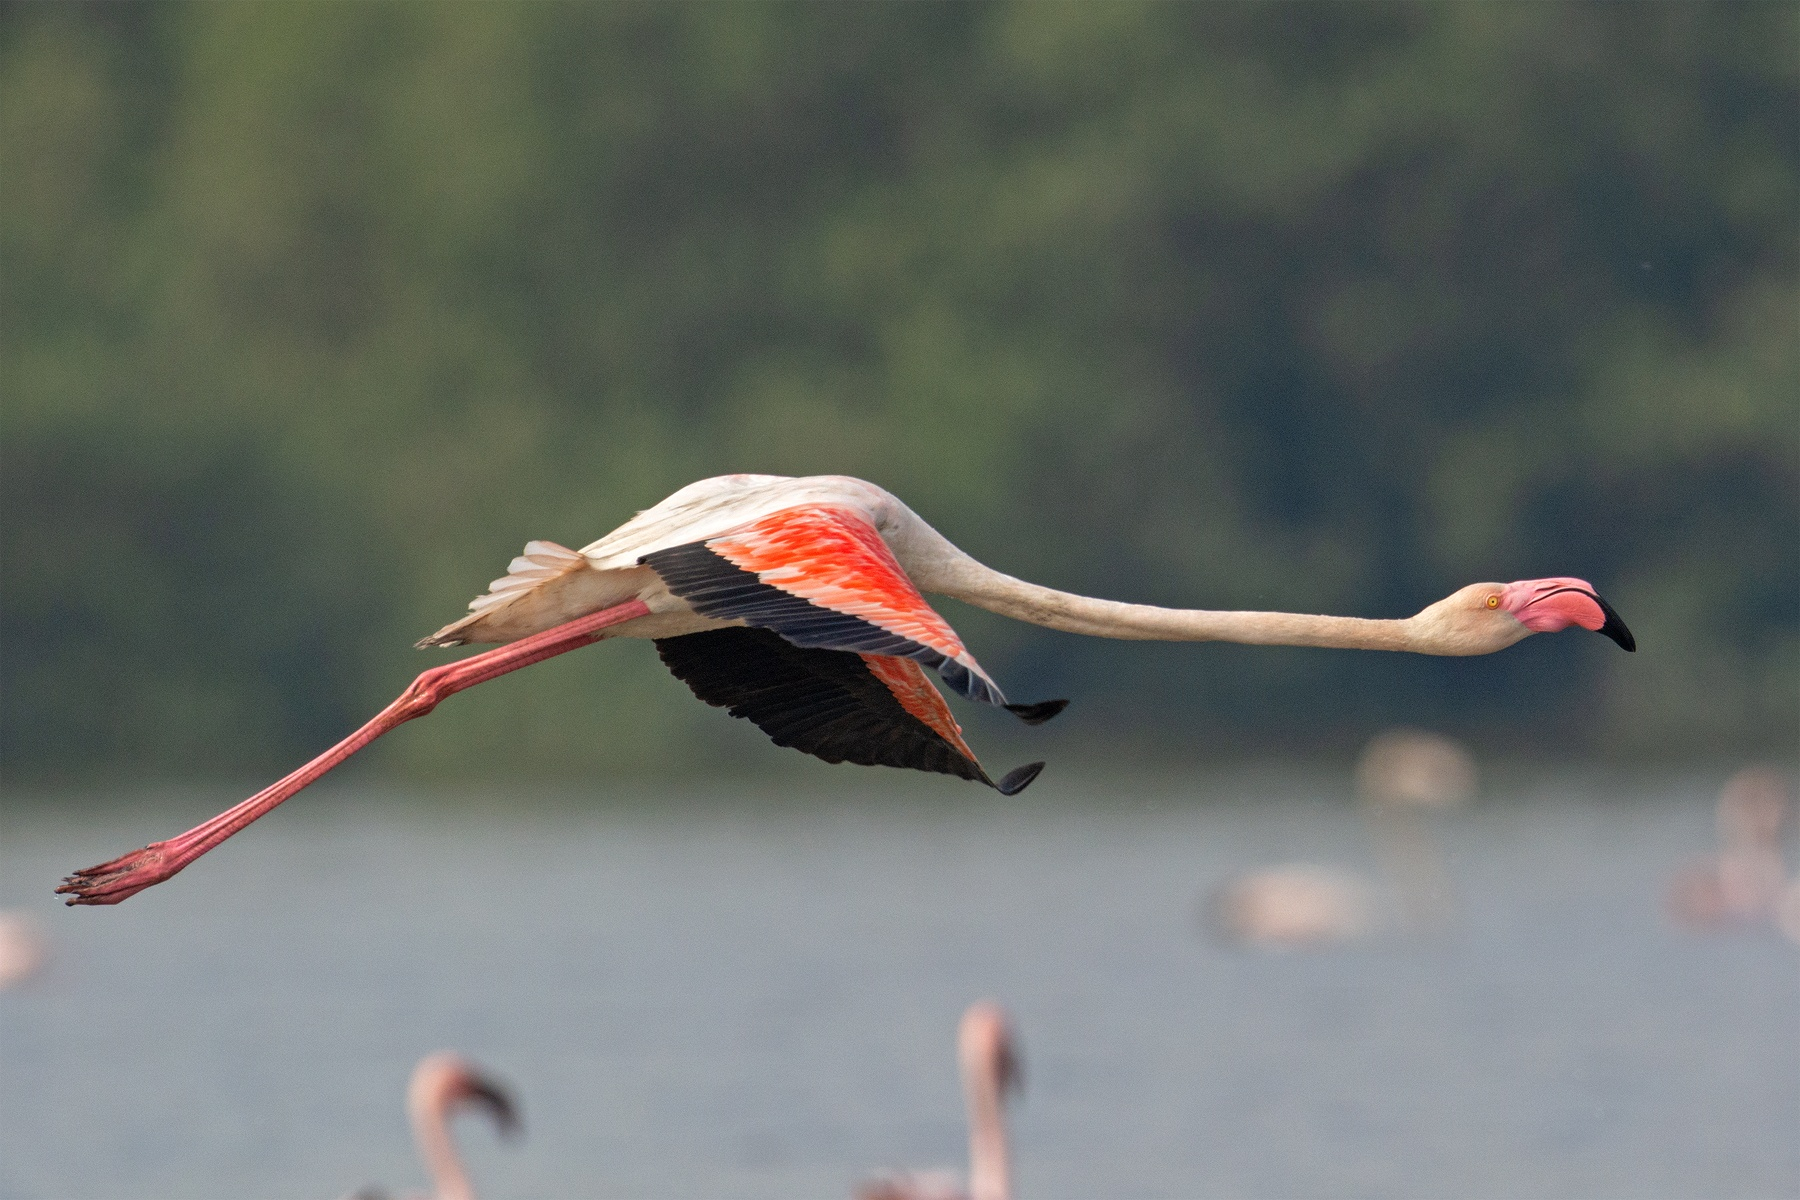 Greater flamingos are identified by their large size, pale body, and pink bill tipped with black (completely dark in the case of the adult lesser flamingo). Photo: Aseem Kothiala